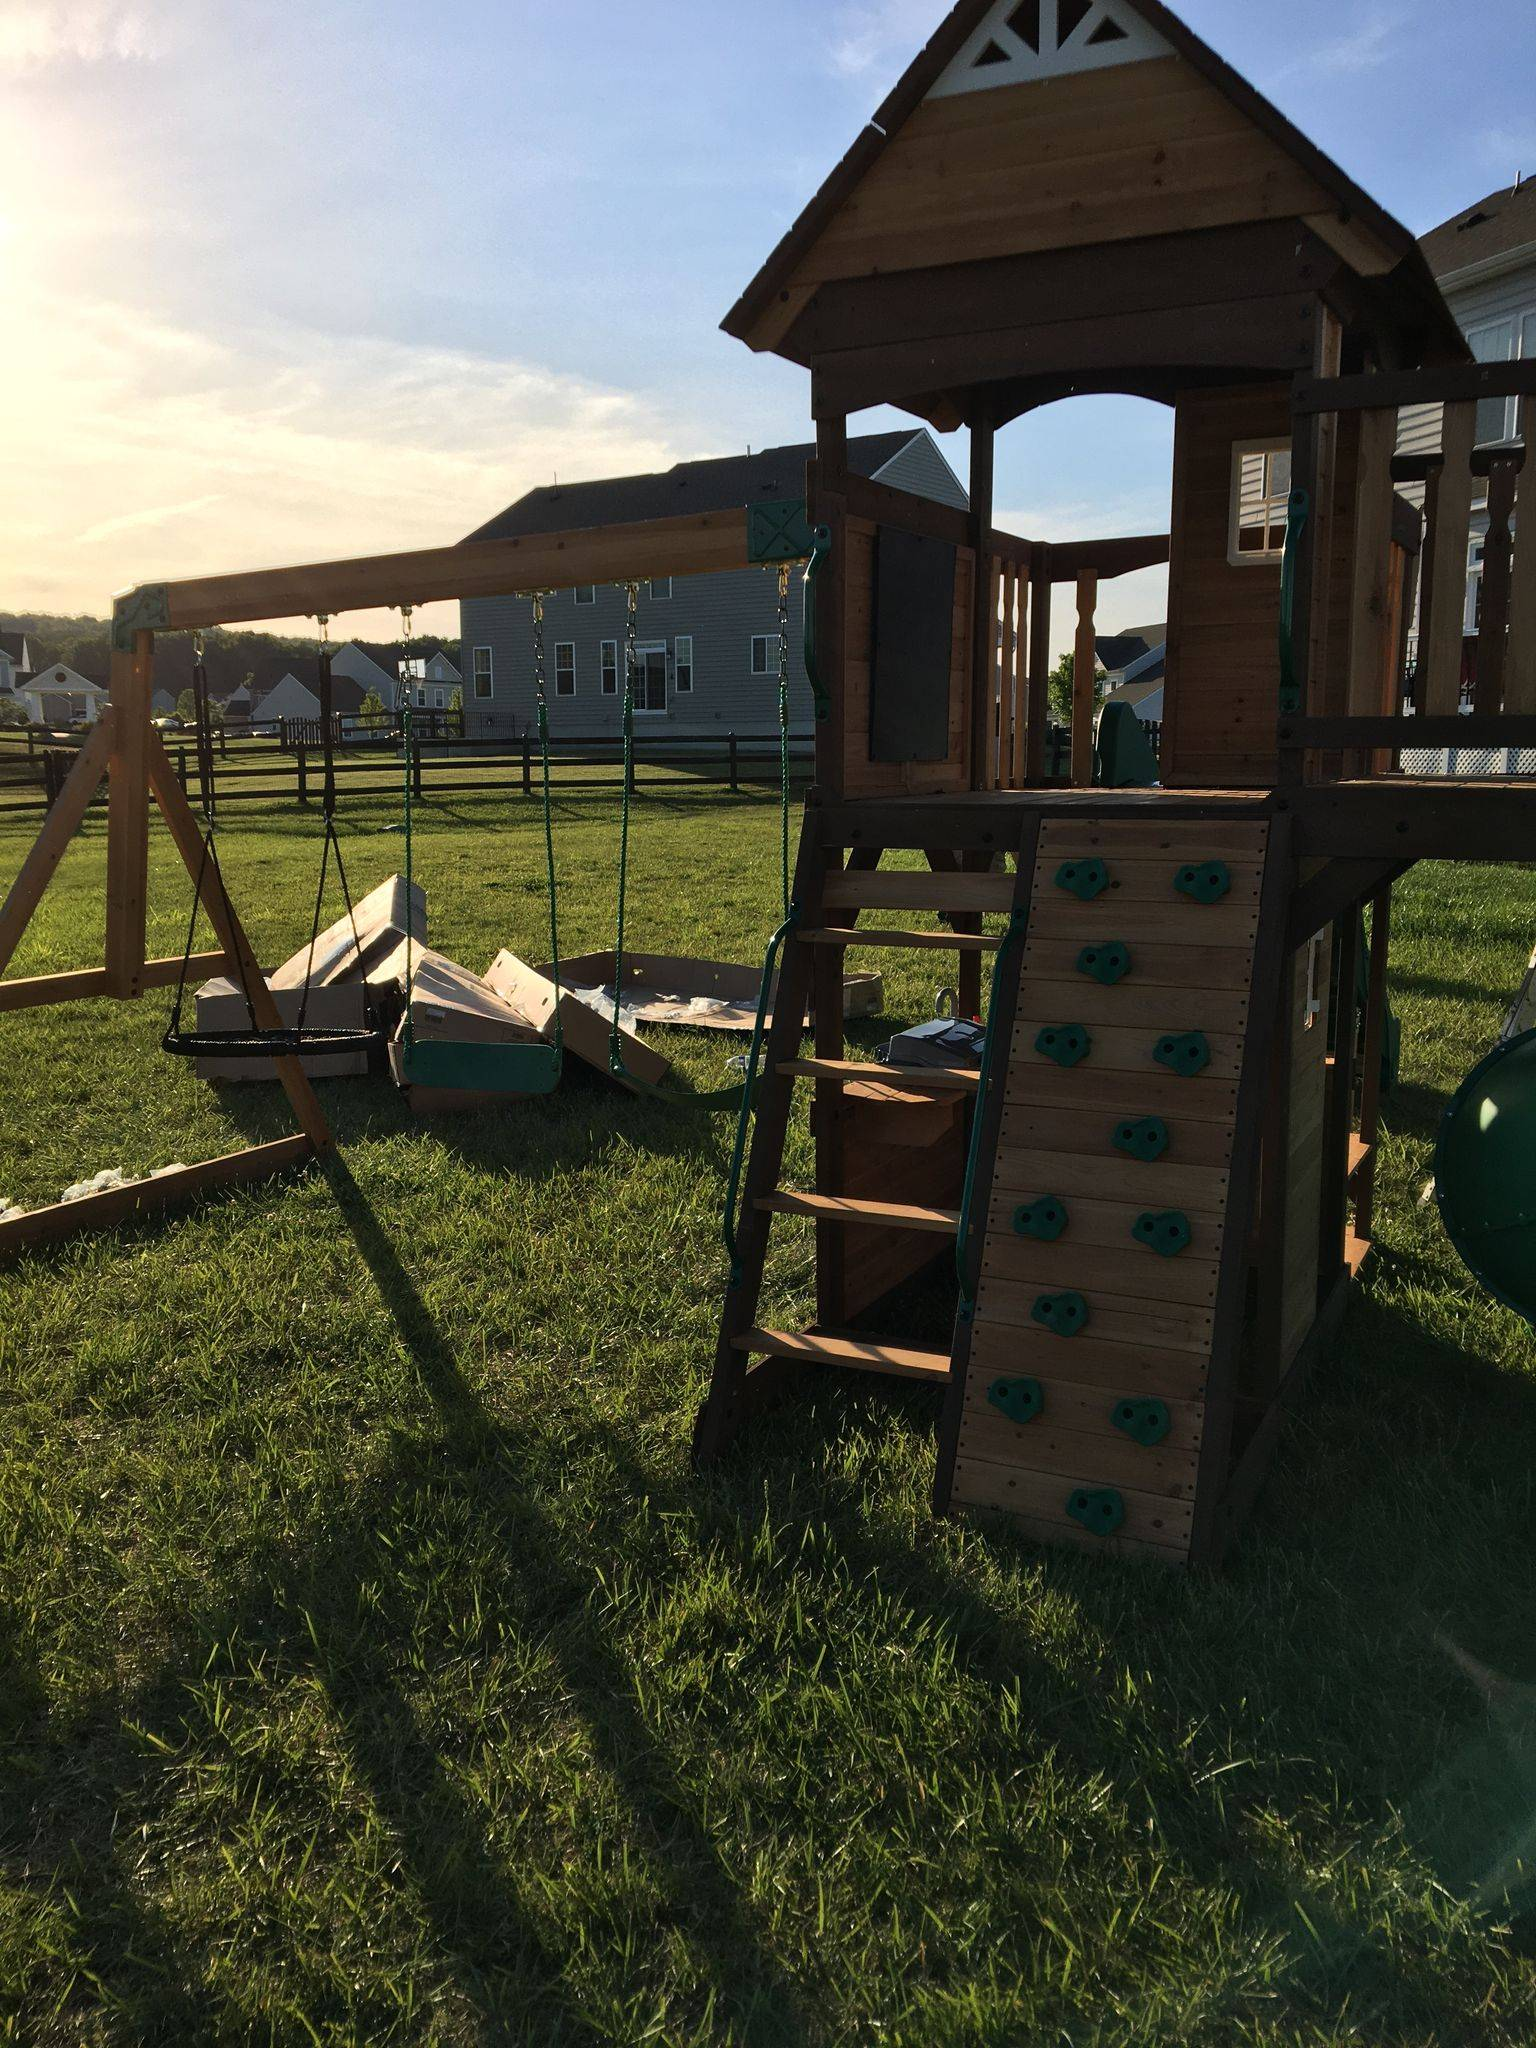 Backyard discovery cedar cove swing set assembly in Potomac Maryland